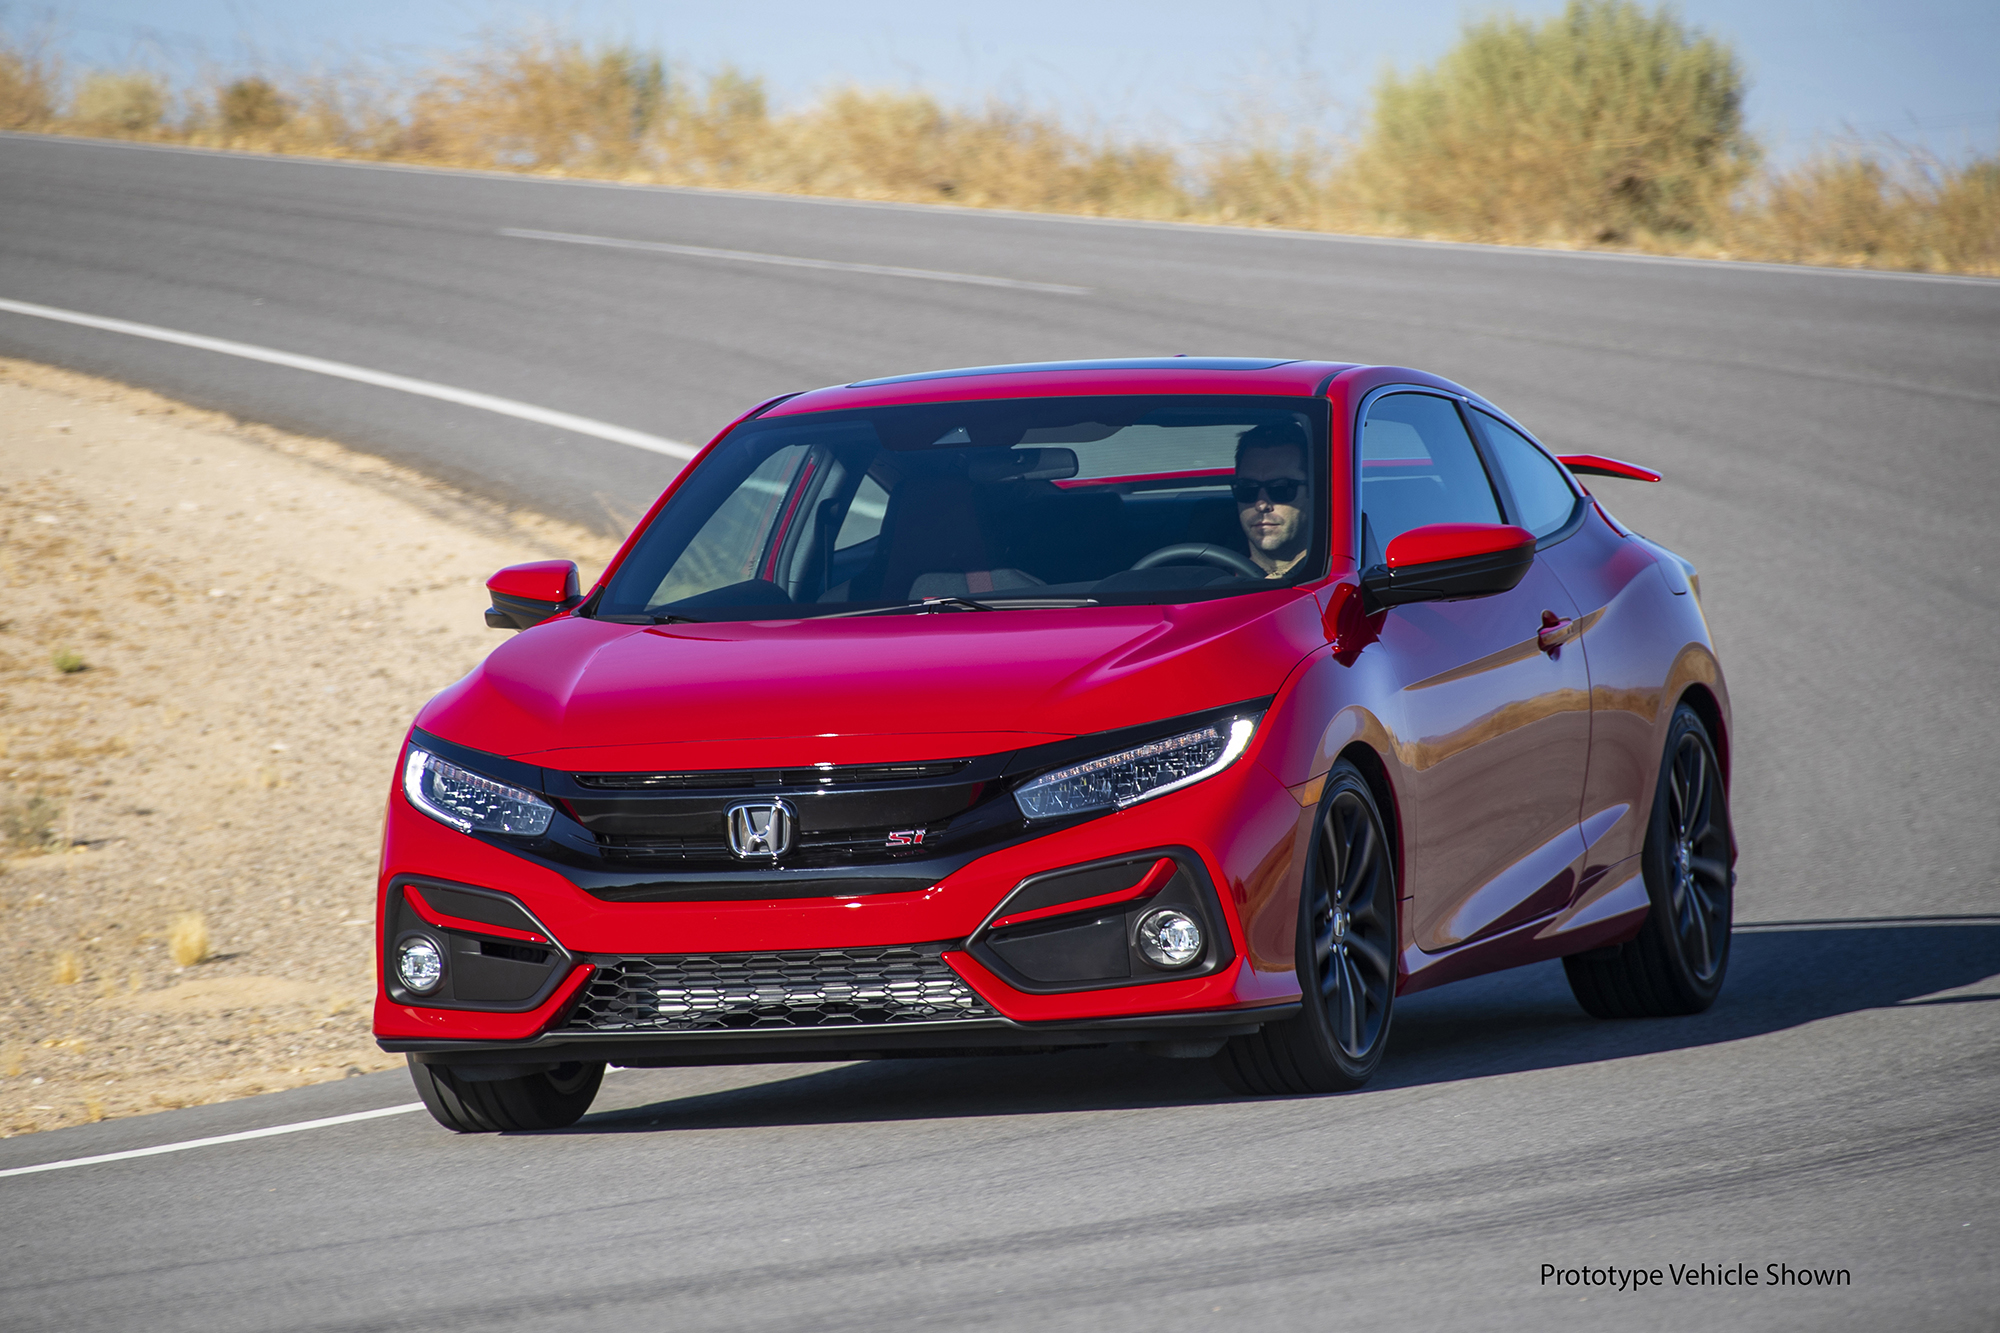 2017 Honda Civic Gas Mileage >> 2020 Civic Si Pays Gas Mileage Penalty For Quicker